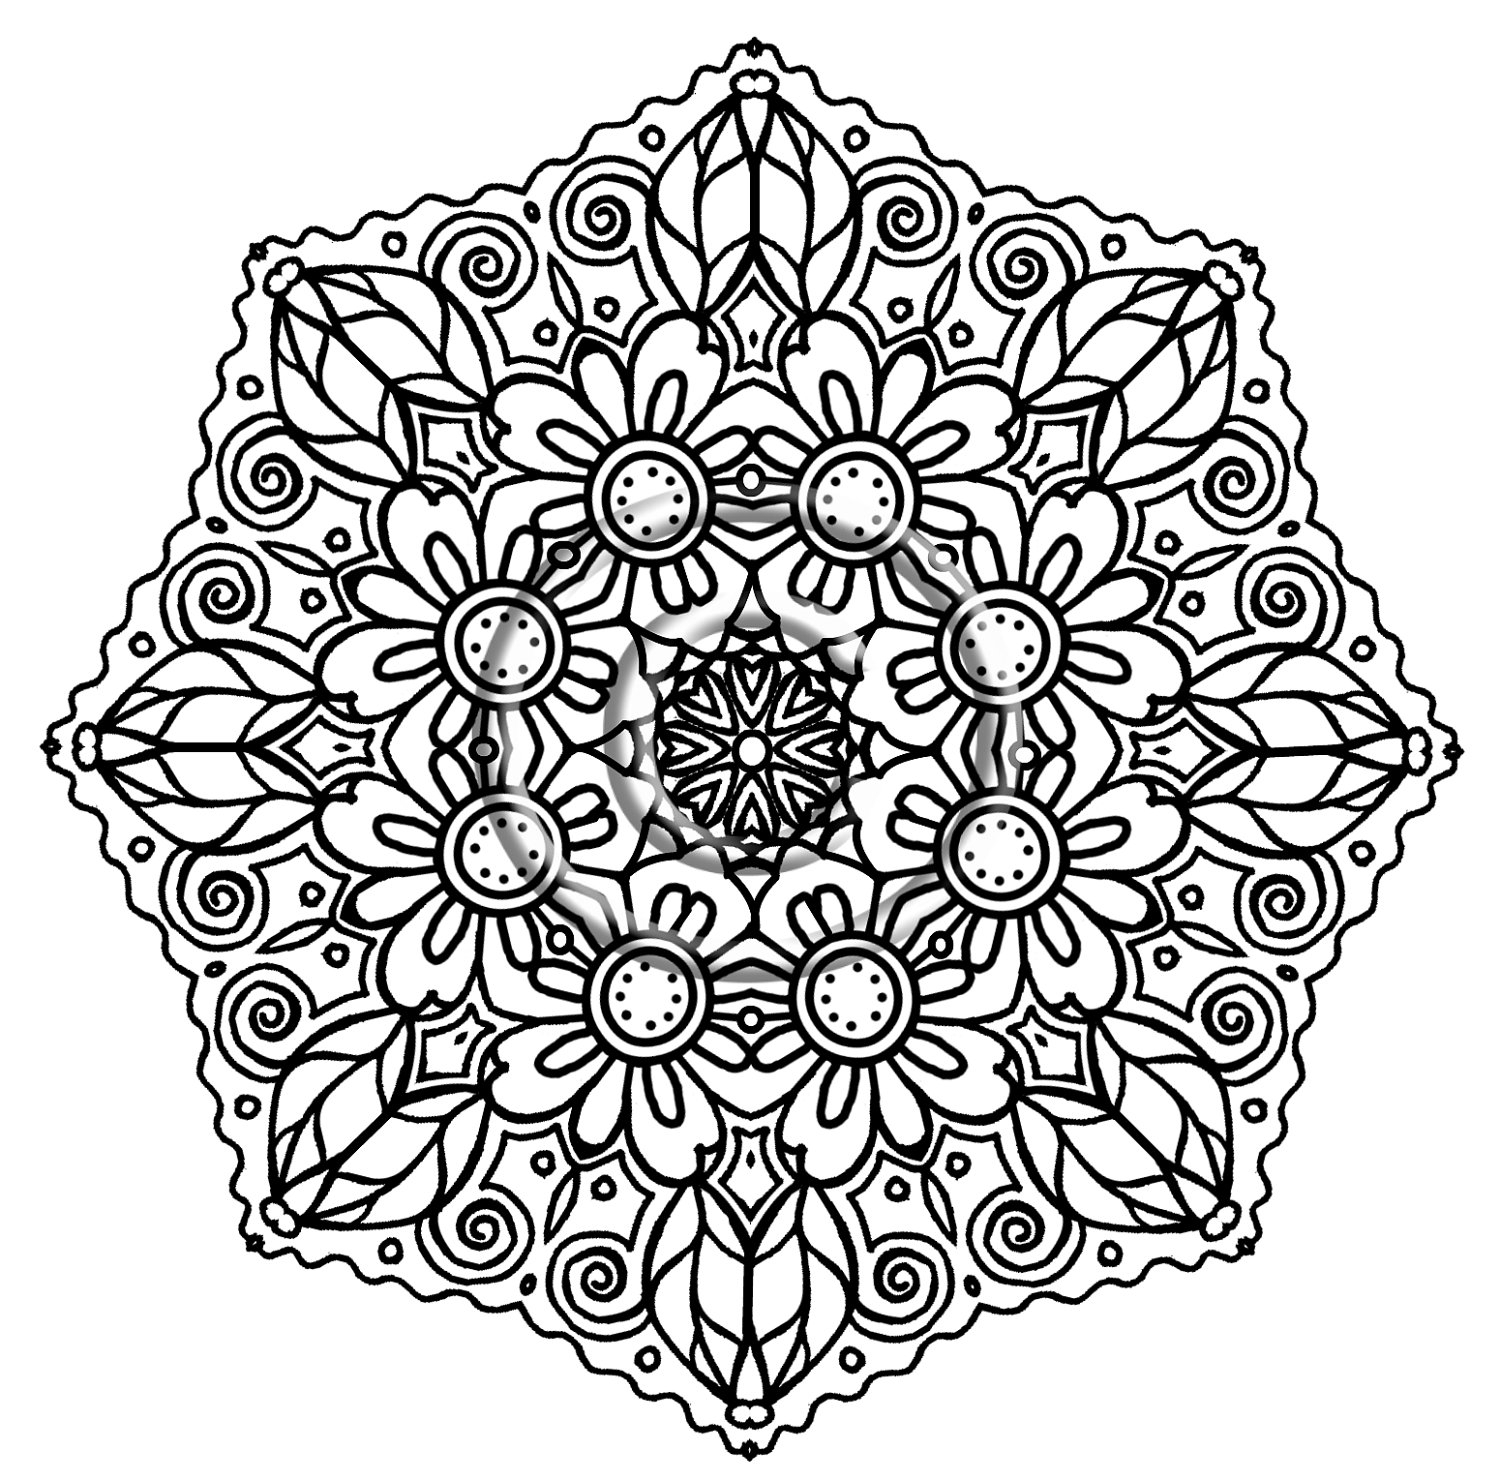 1500x1481 Coloring Printable Abstract Coloring Pages For Adults Printable